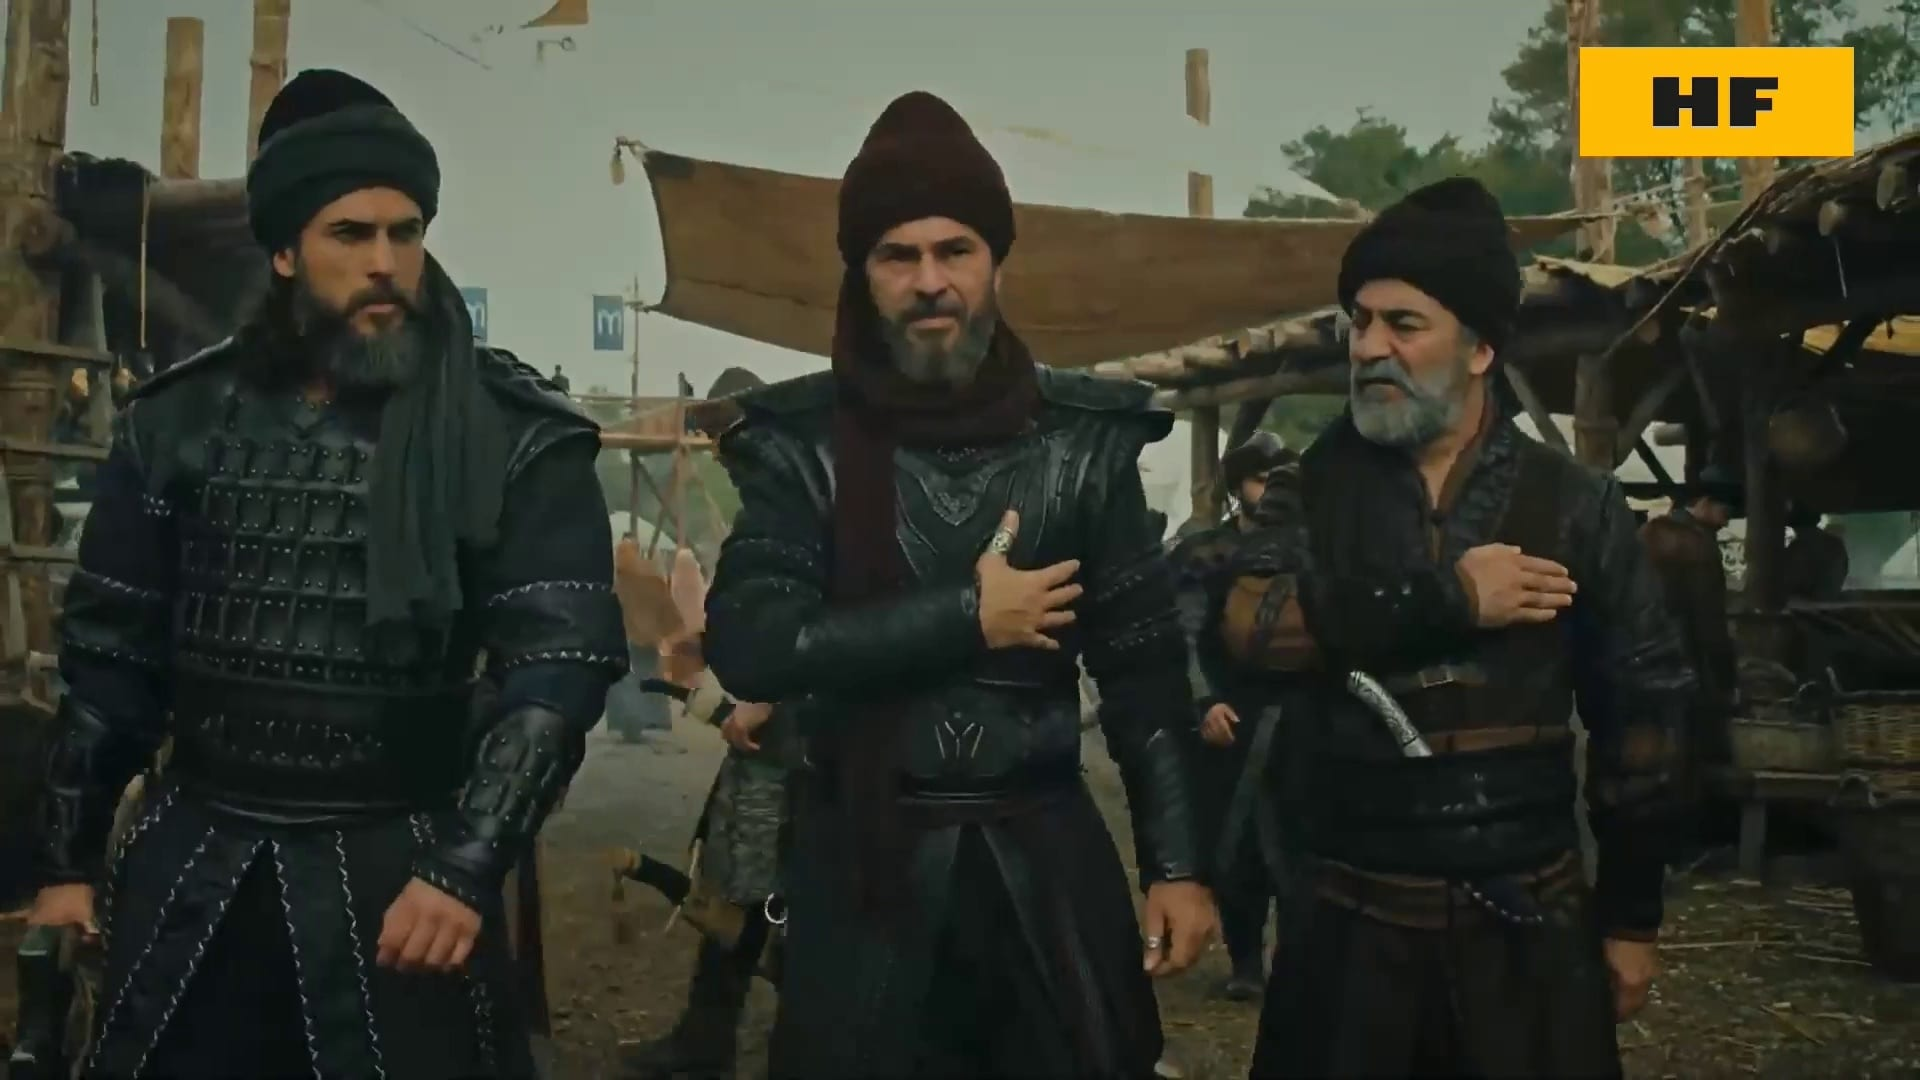 Dirilis Ertugrul season 5 Episode 1